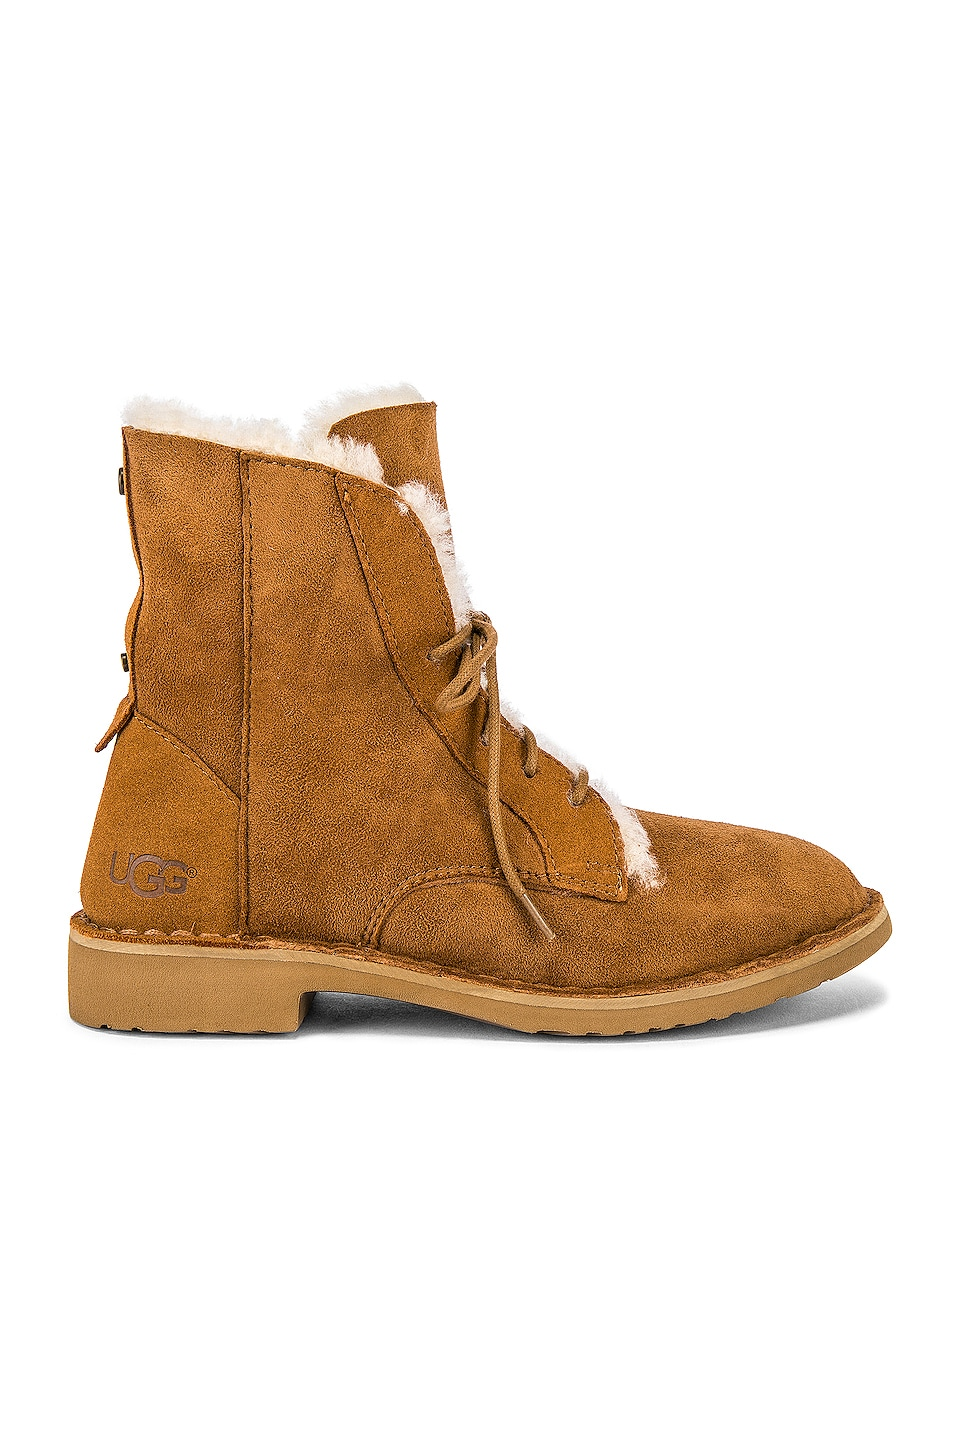 UGG Quincy Boot in Chestnut